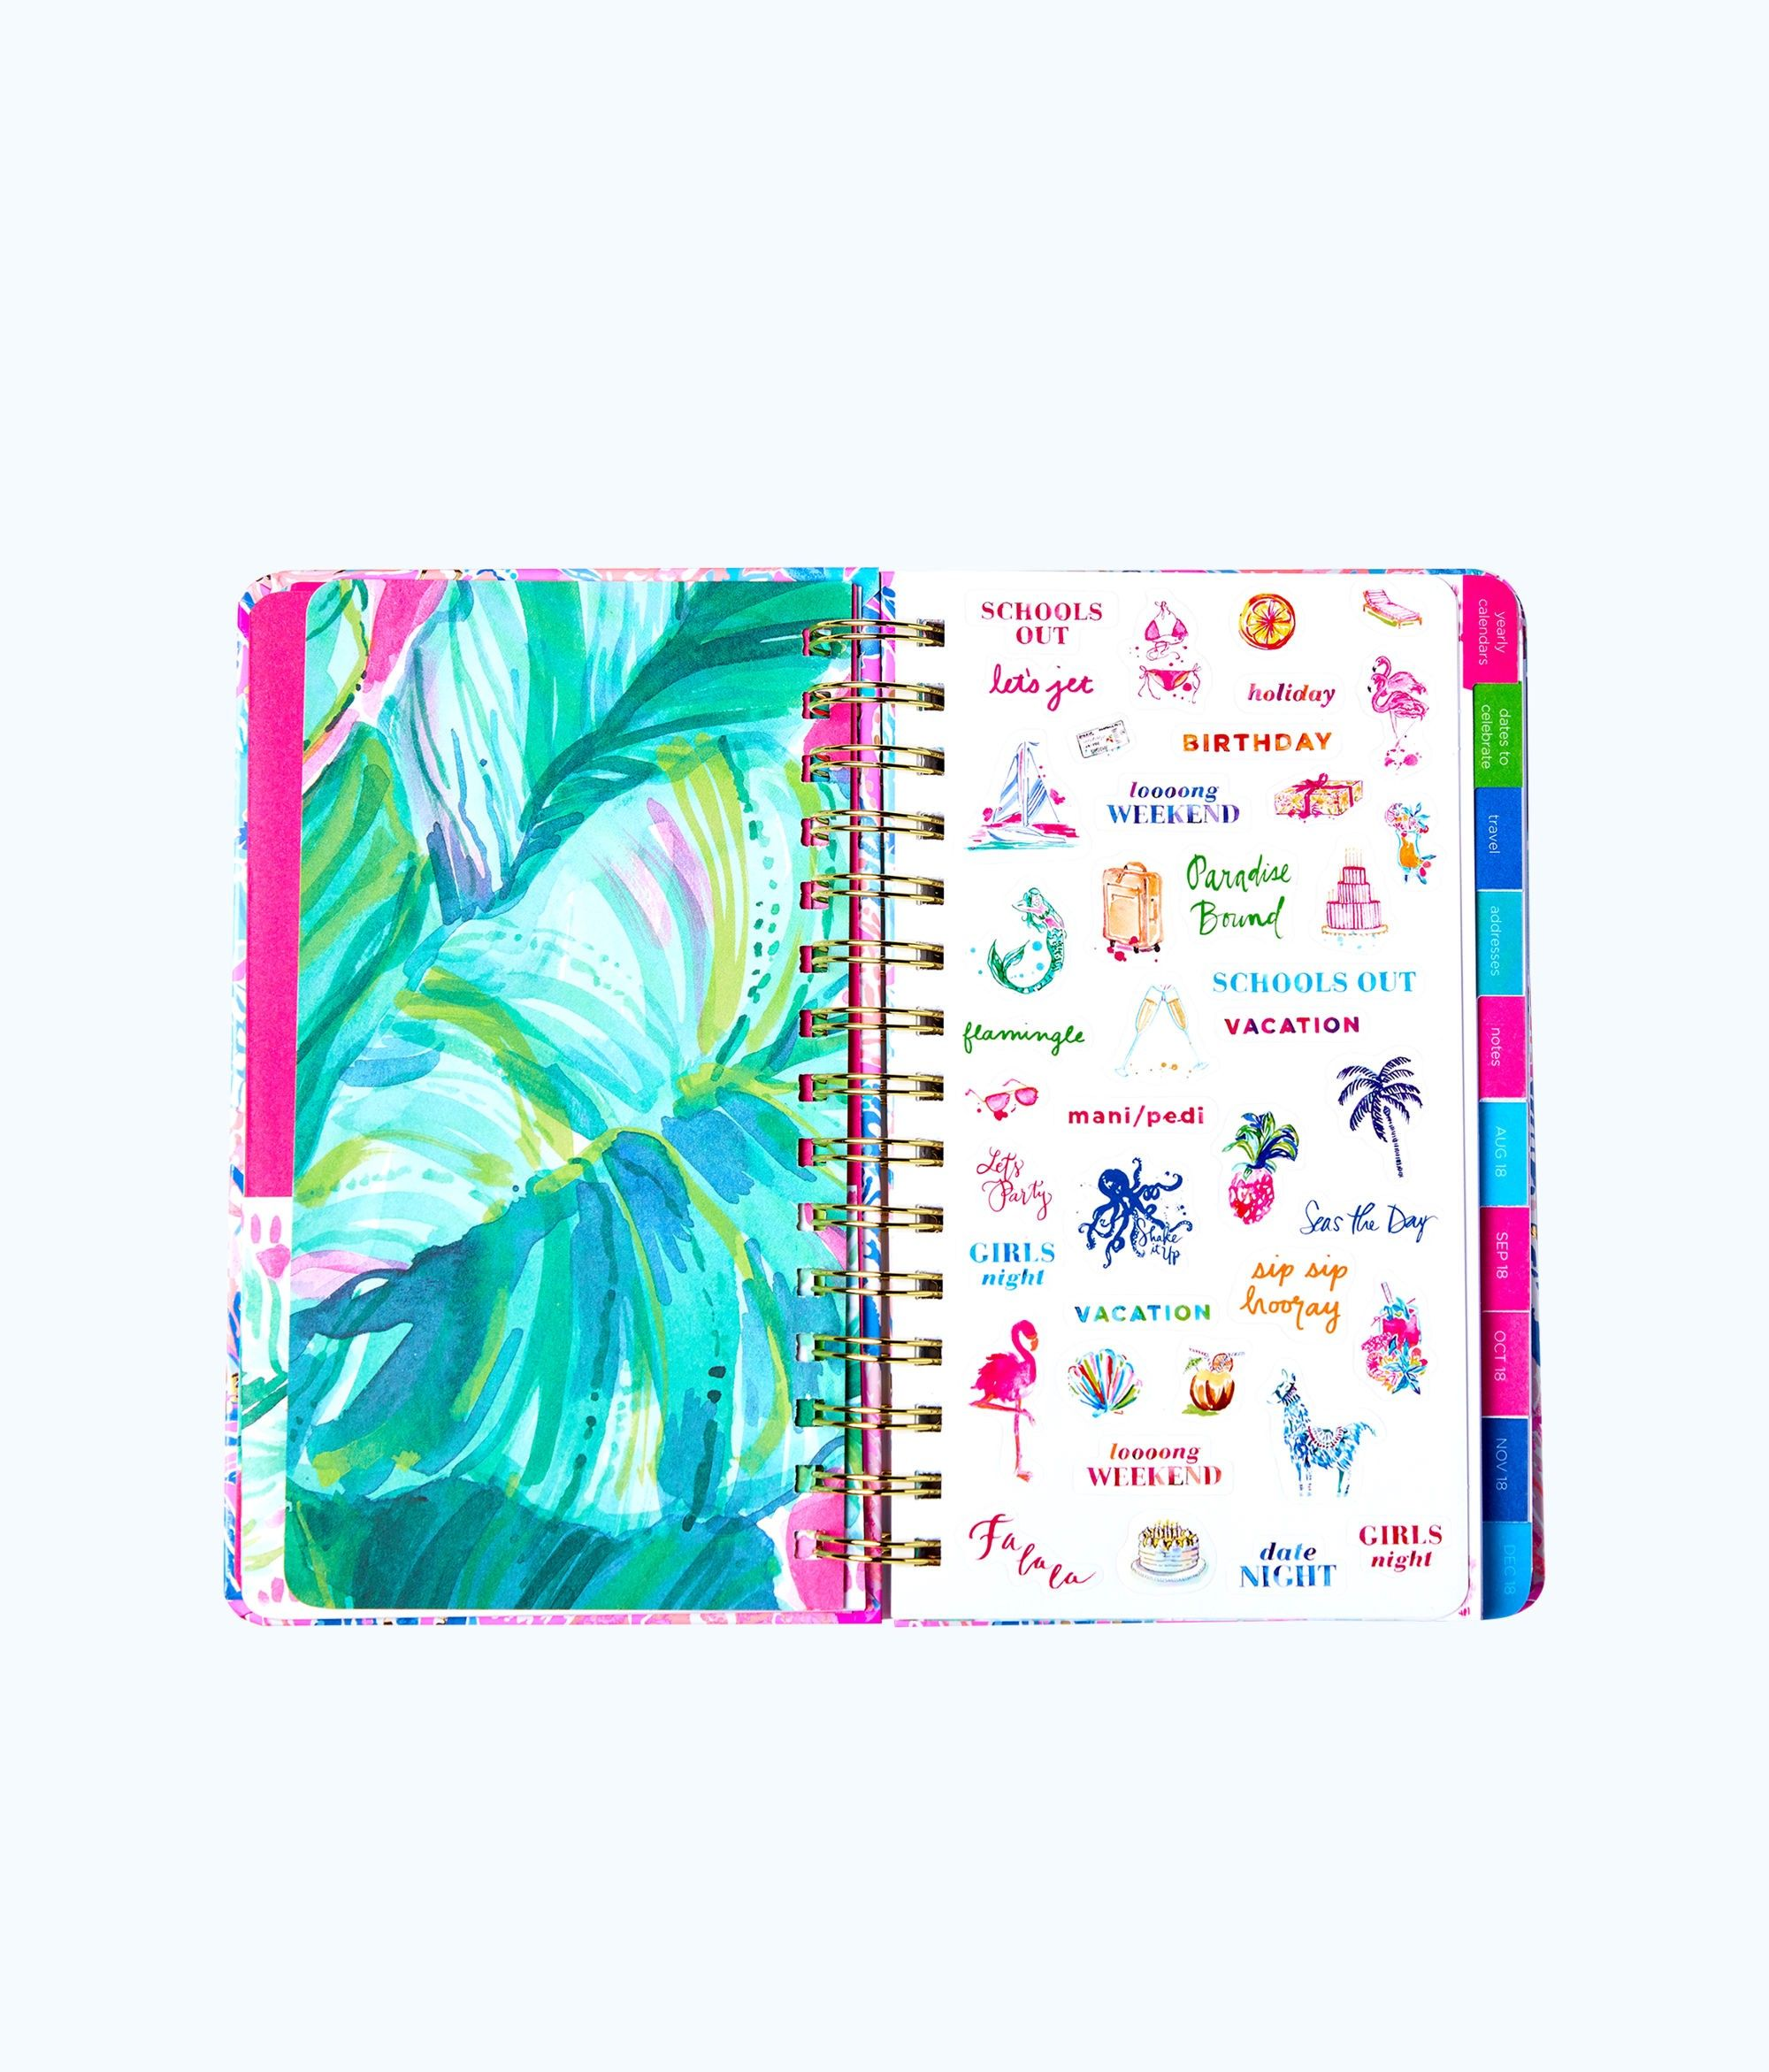 20a9086316bd95 Lilly Pulitzer 2019 12 Month Large Monthly Agenda - Deep Indigo Seaglass  Menagerie Planner 1 Sz Gold. Lilly Pulitzer 2018-2019 17 Month Medium ...